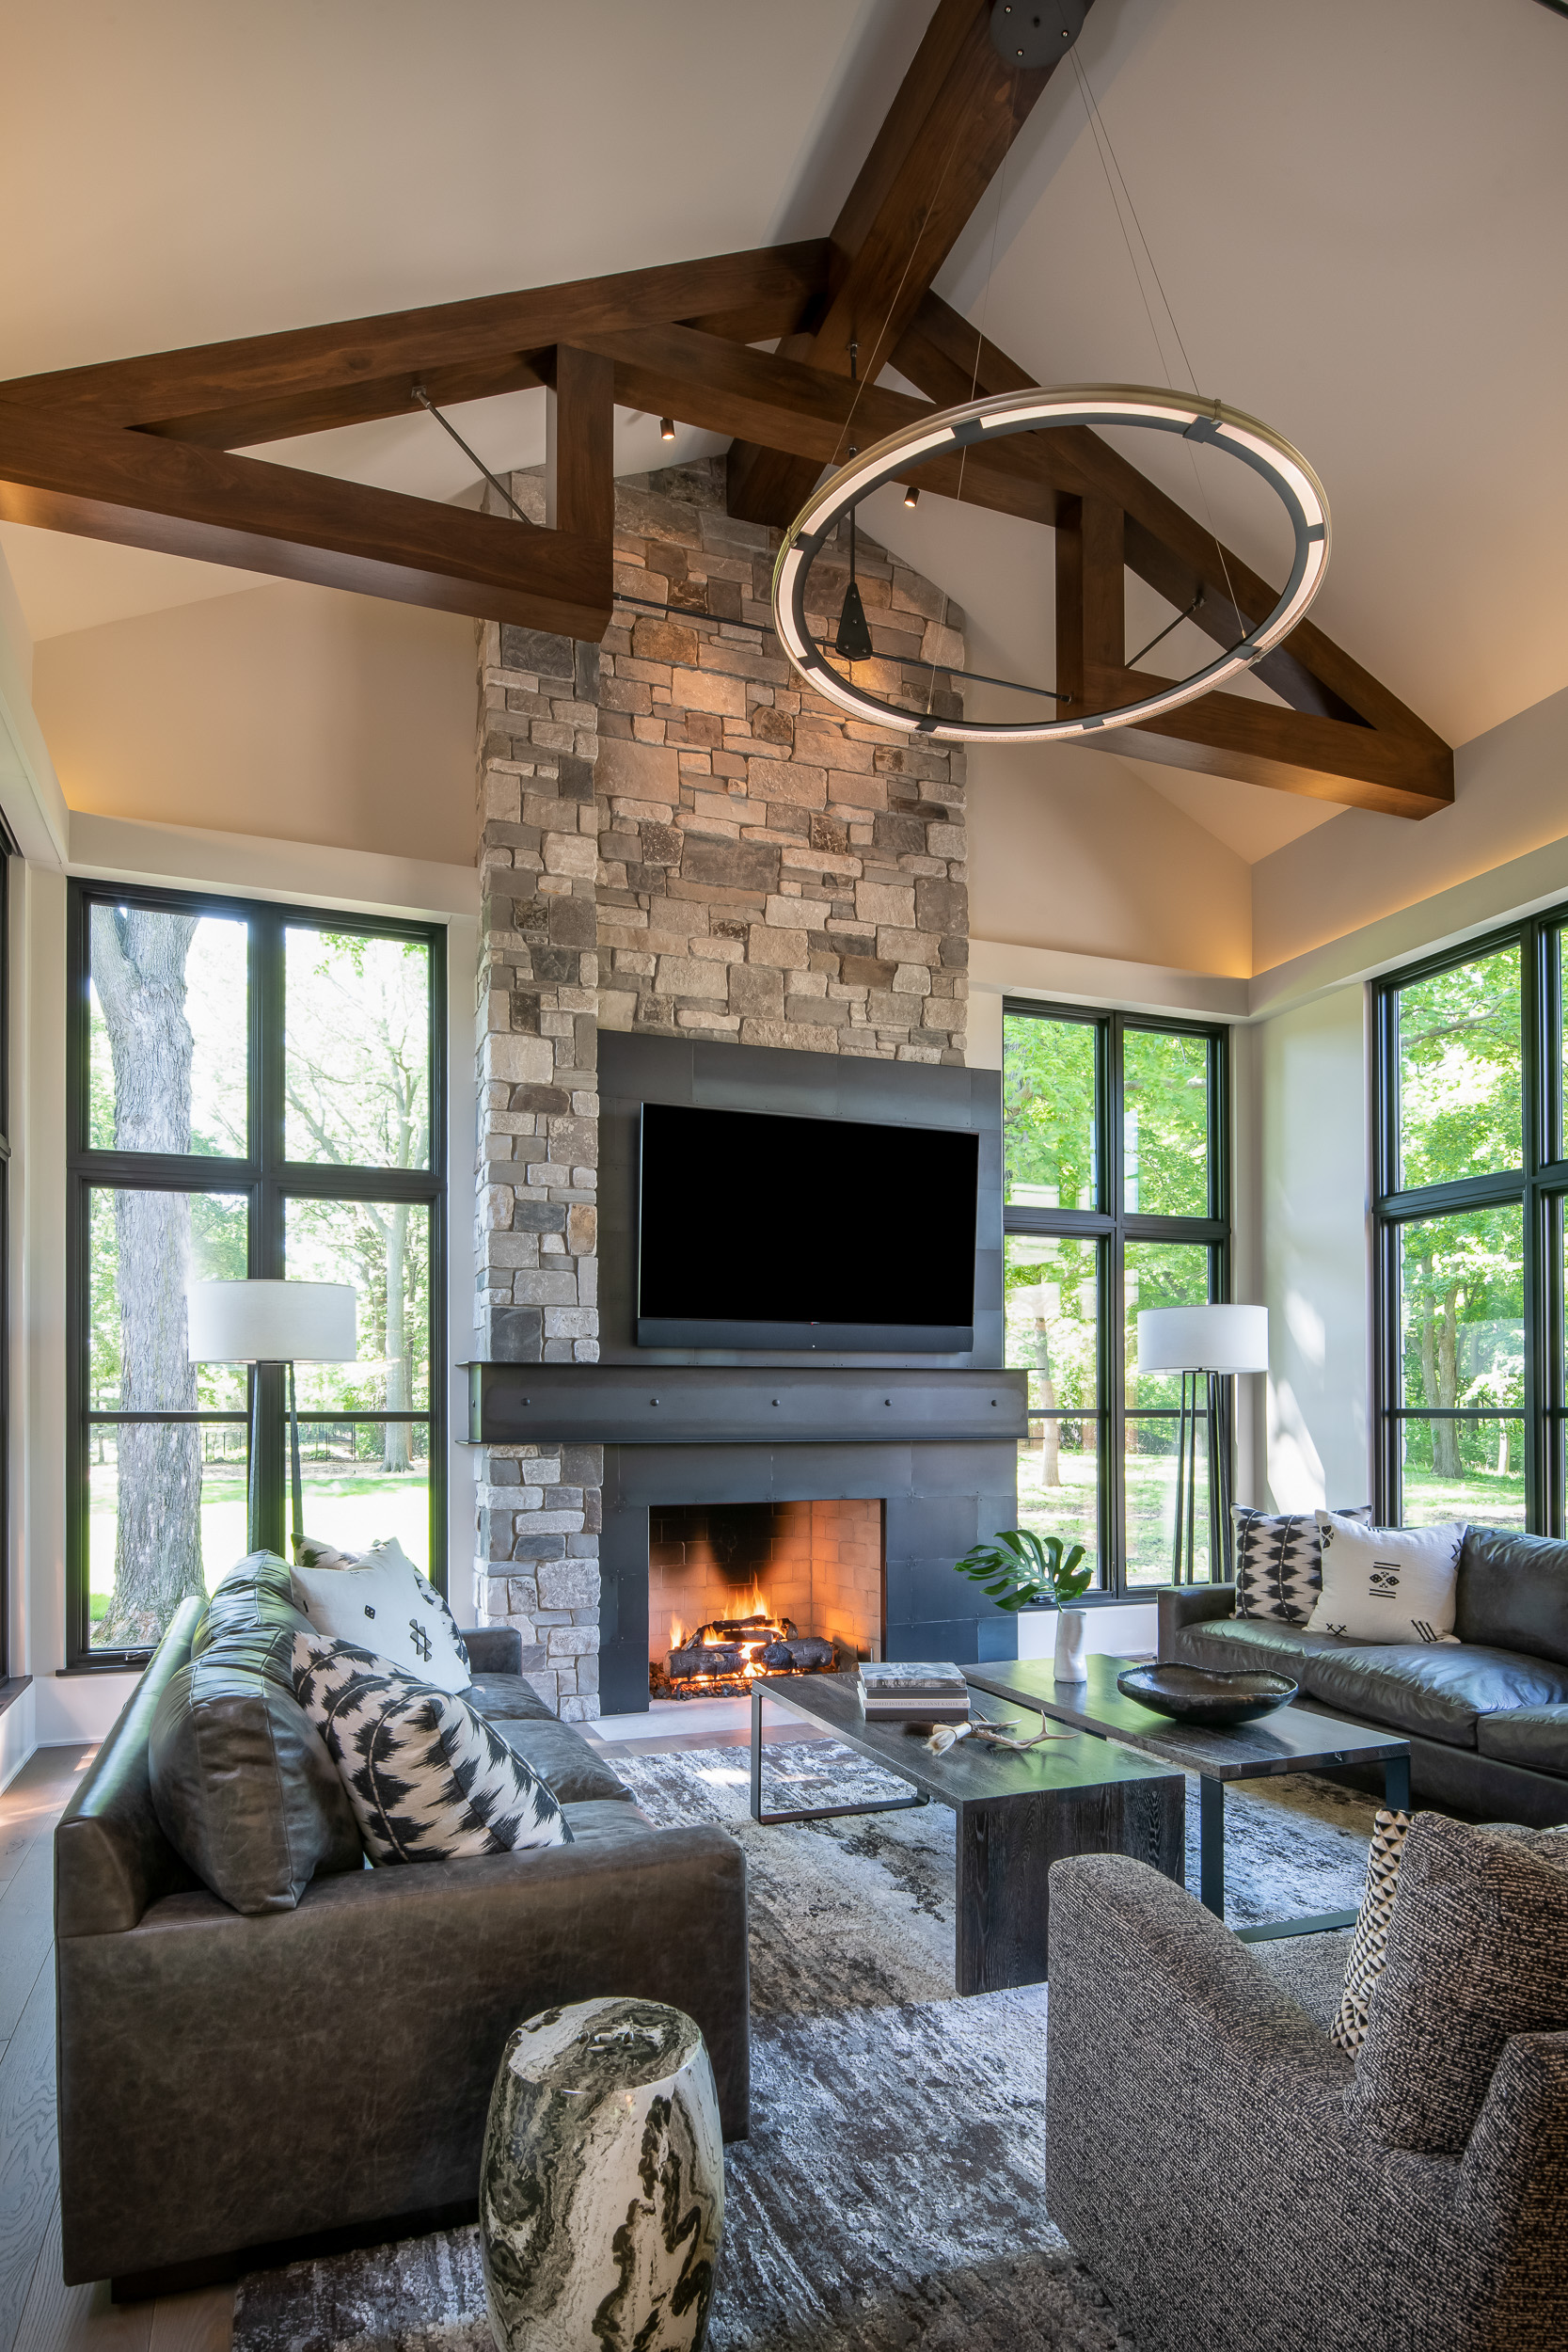 Modern Rustic - Great Room